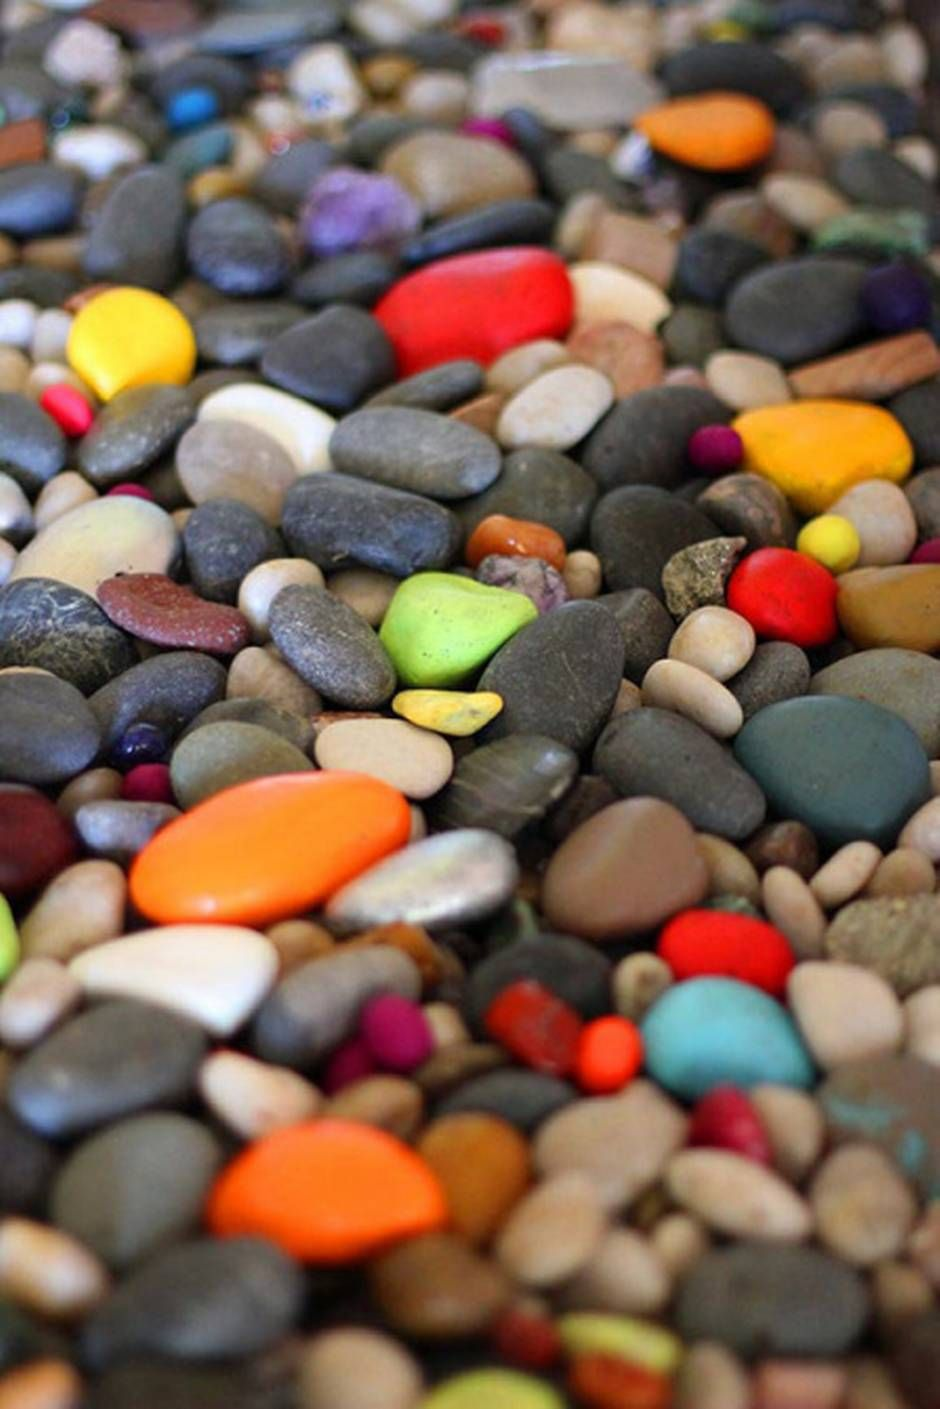 Build a garden that rocks Turn plain stones into a whimsical surprise is part of Rock garden Ideas - Build a garden that rocks Turn plain stones into a whimsical surprise